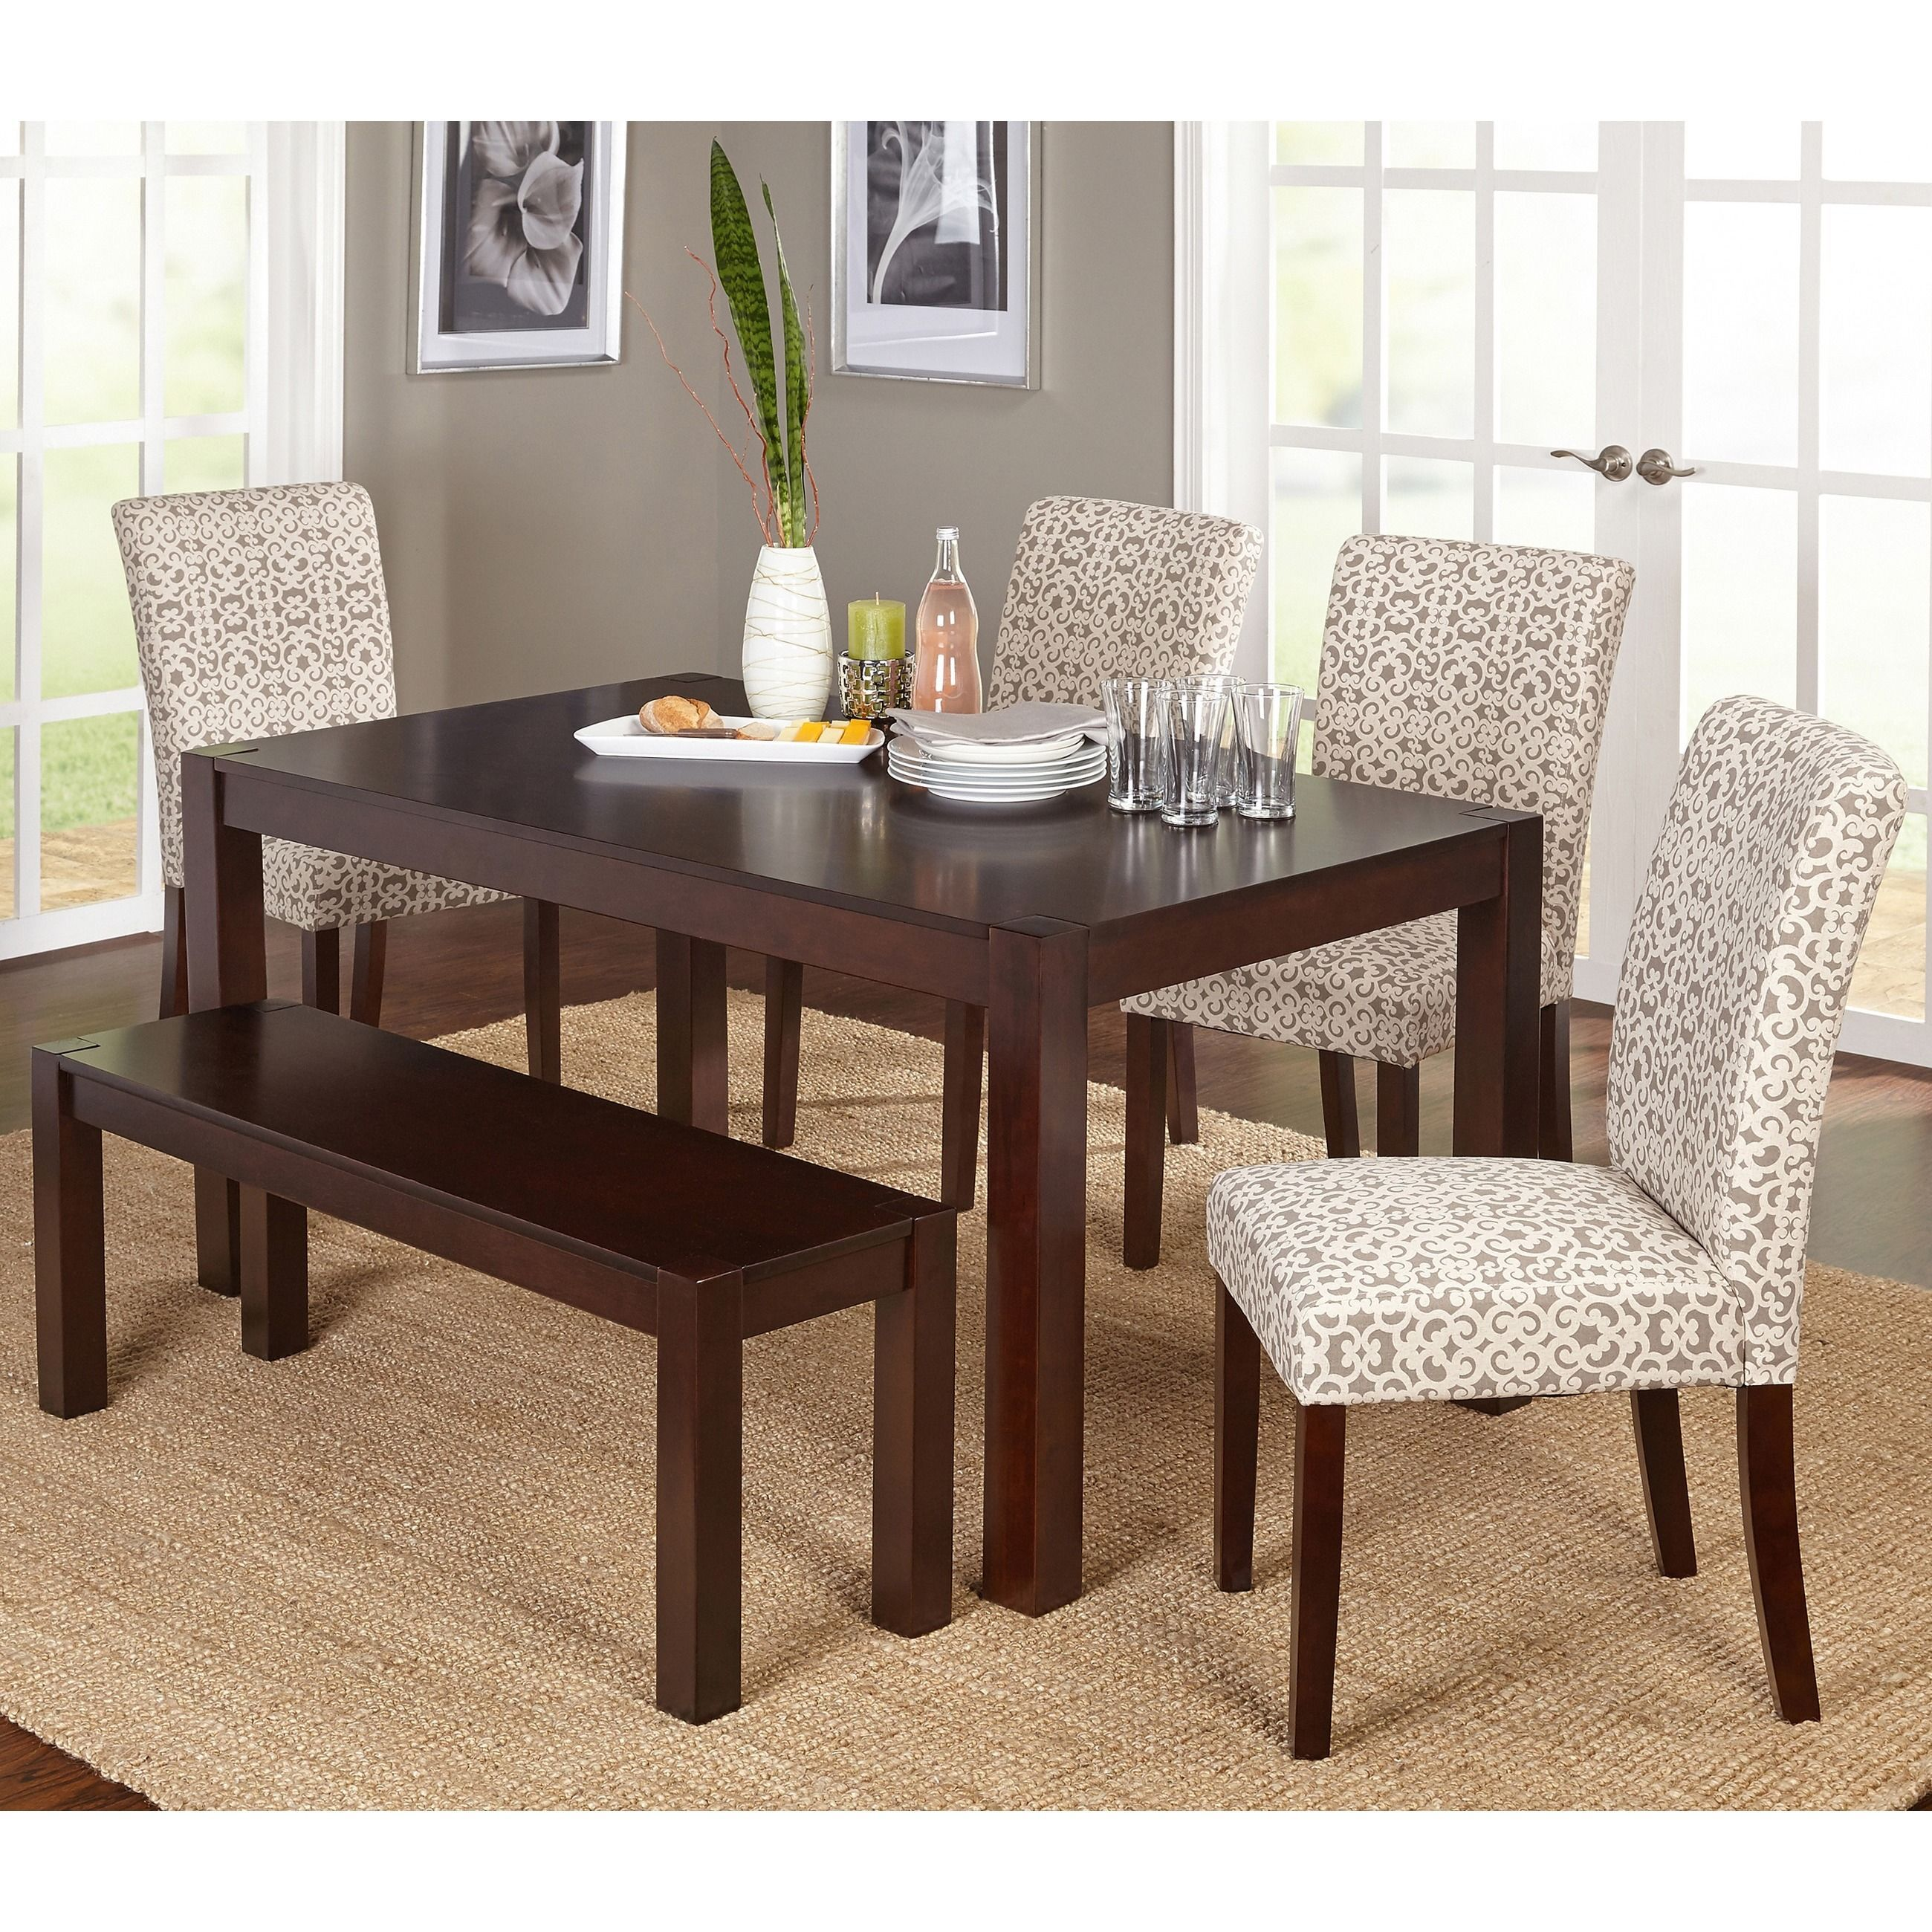 Simple Living Axis 6 Piece Dining Set With Dining Bench (Grey/Beige Print